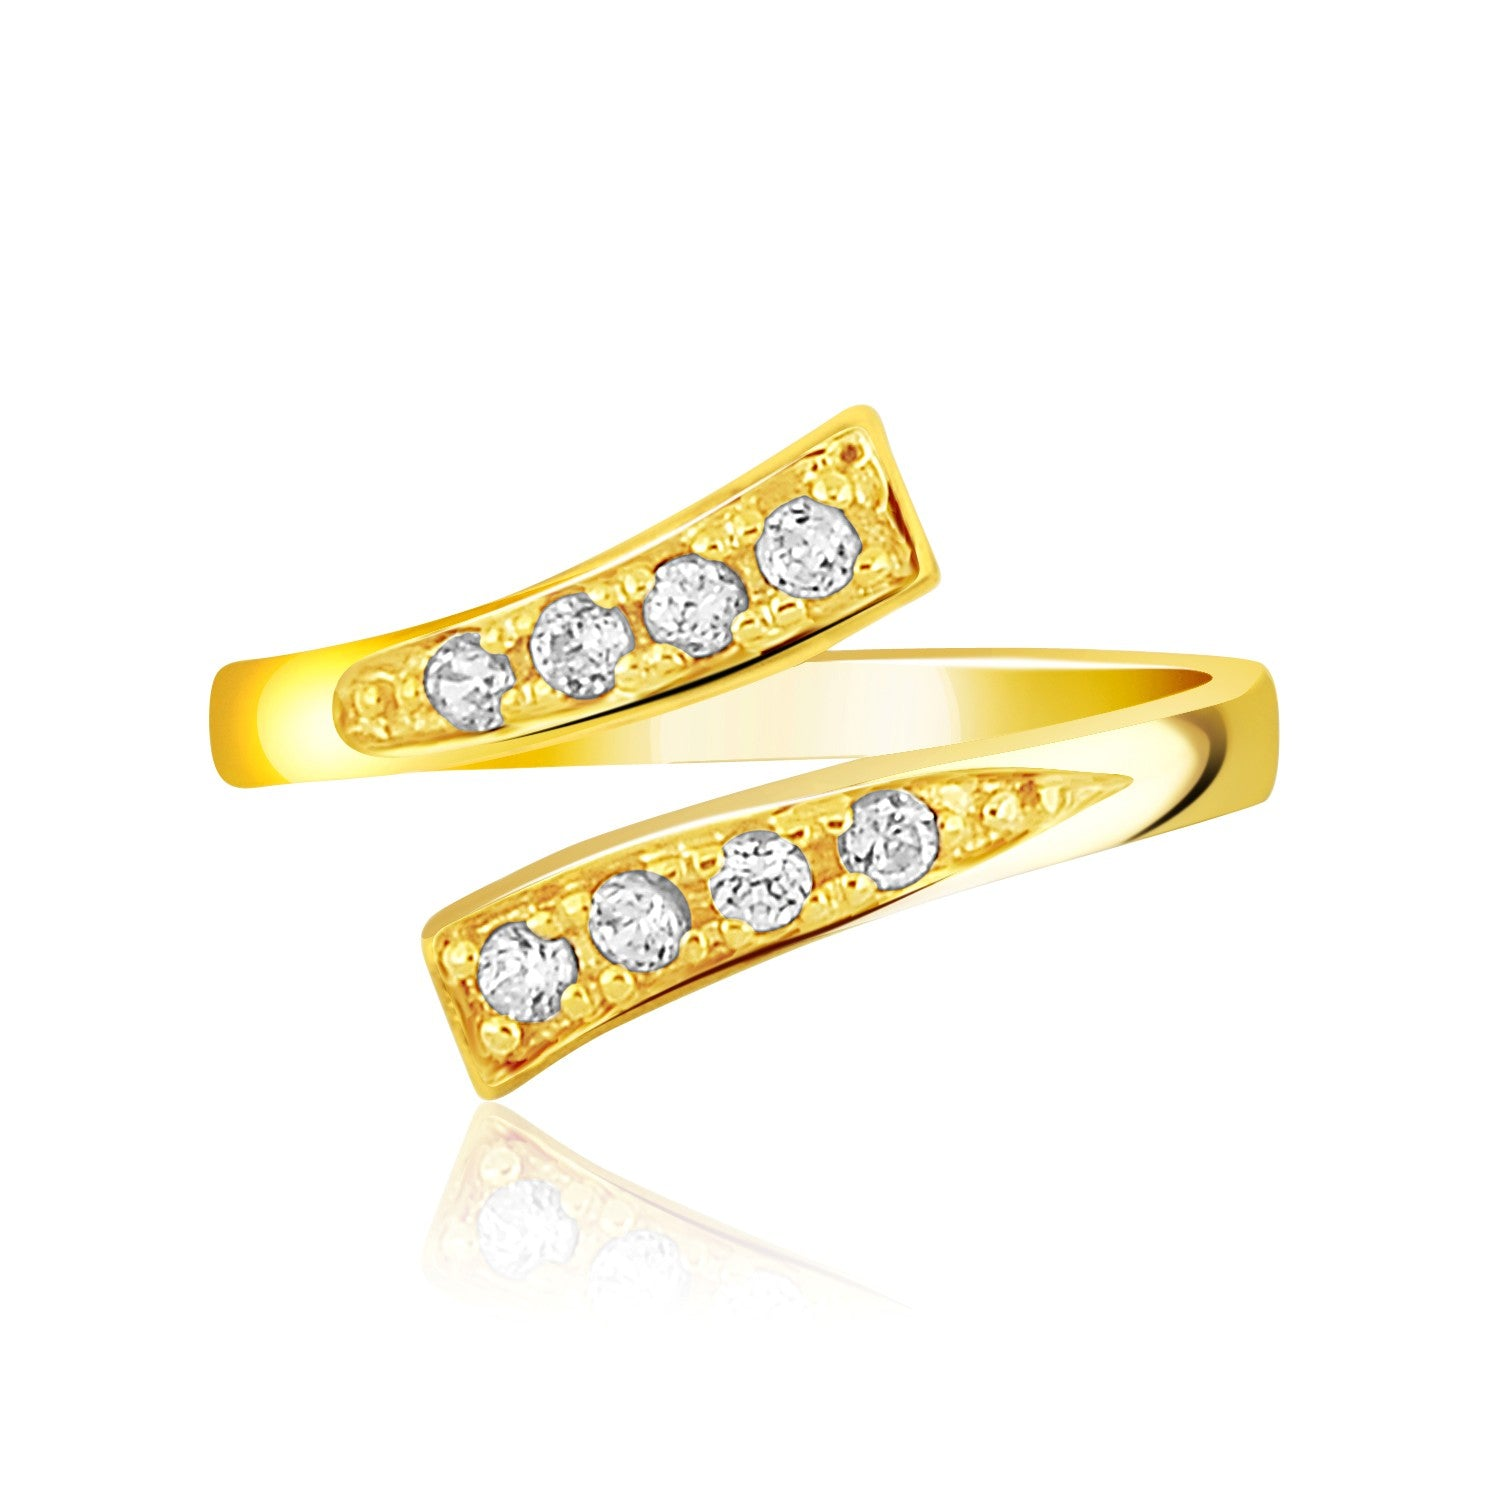 14K Yellow Gold Contemporary Cubic Zirconia Accented Toe Ring - Uniquepedia.com